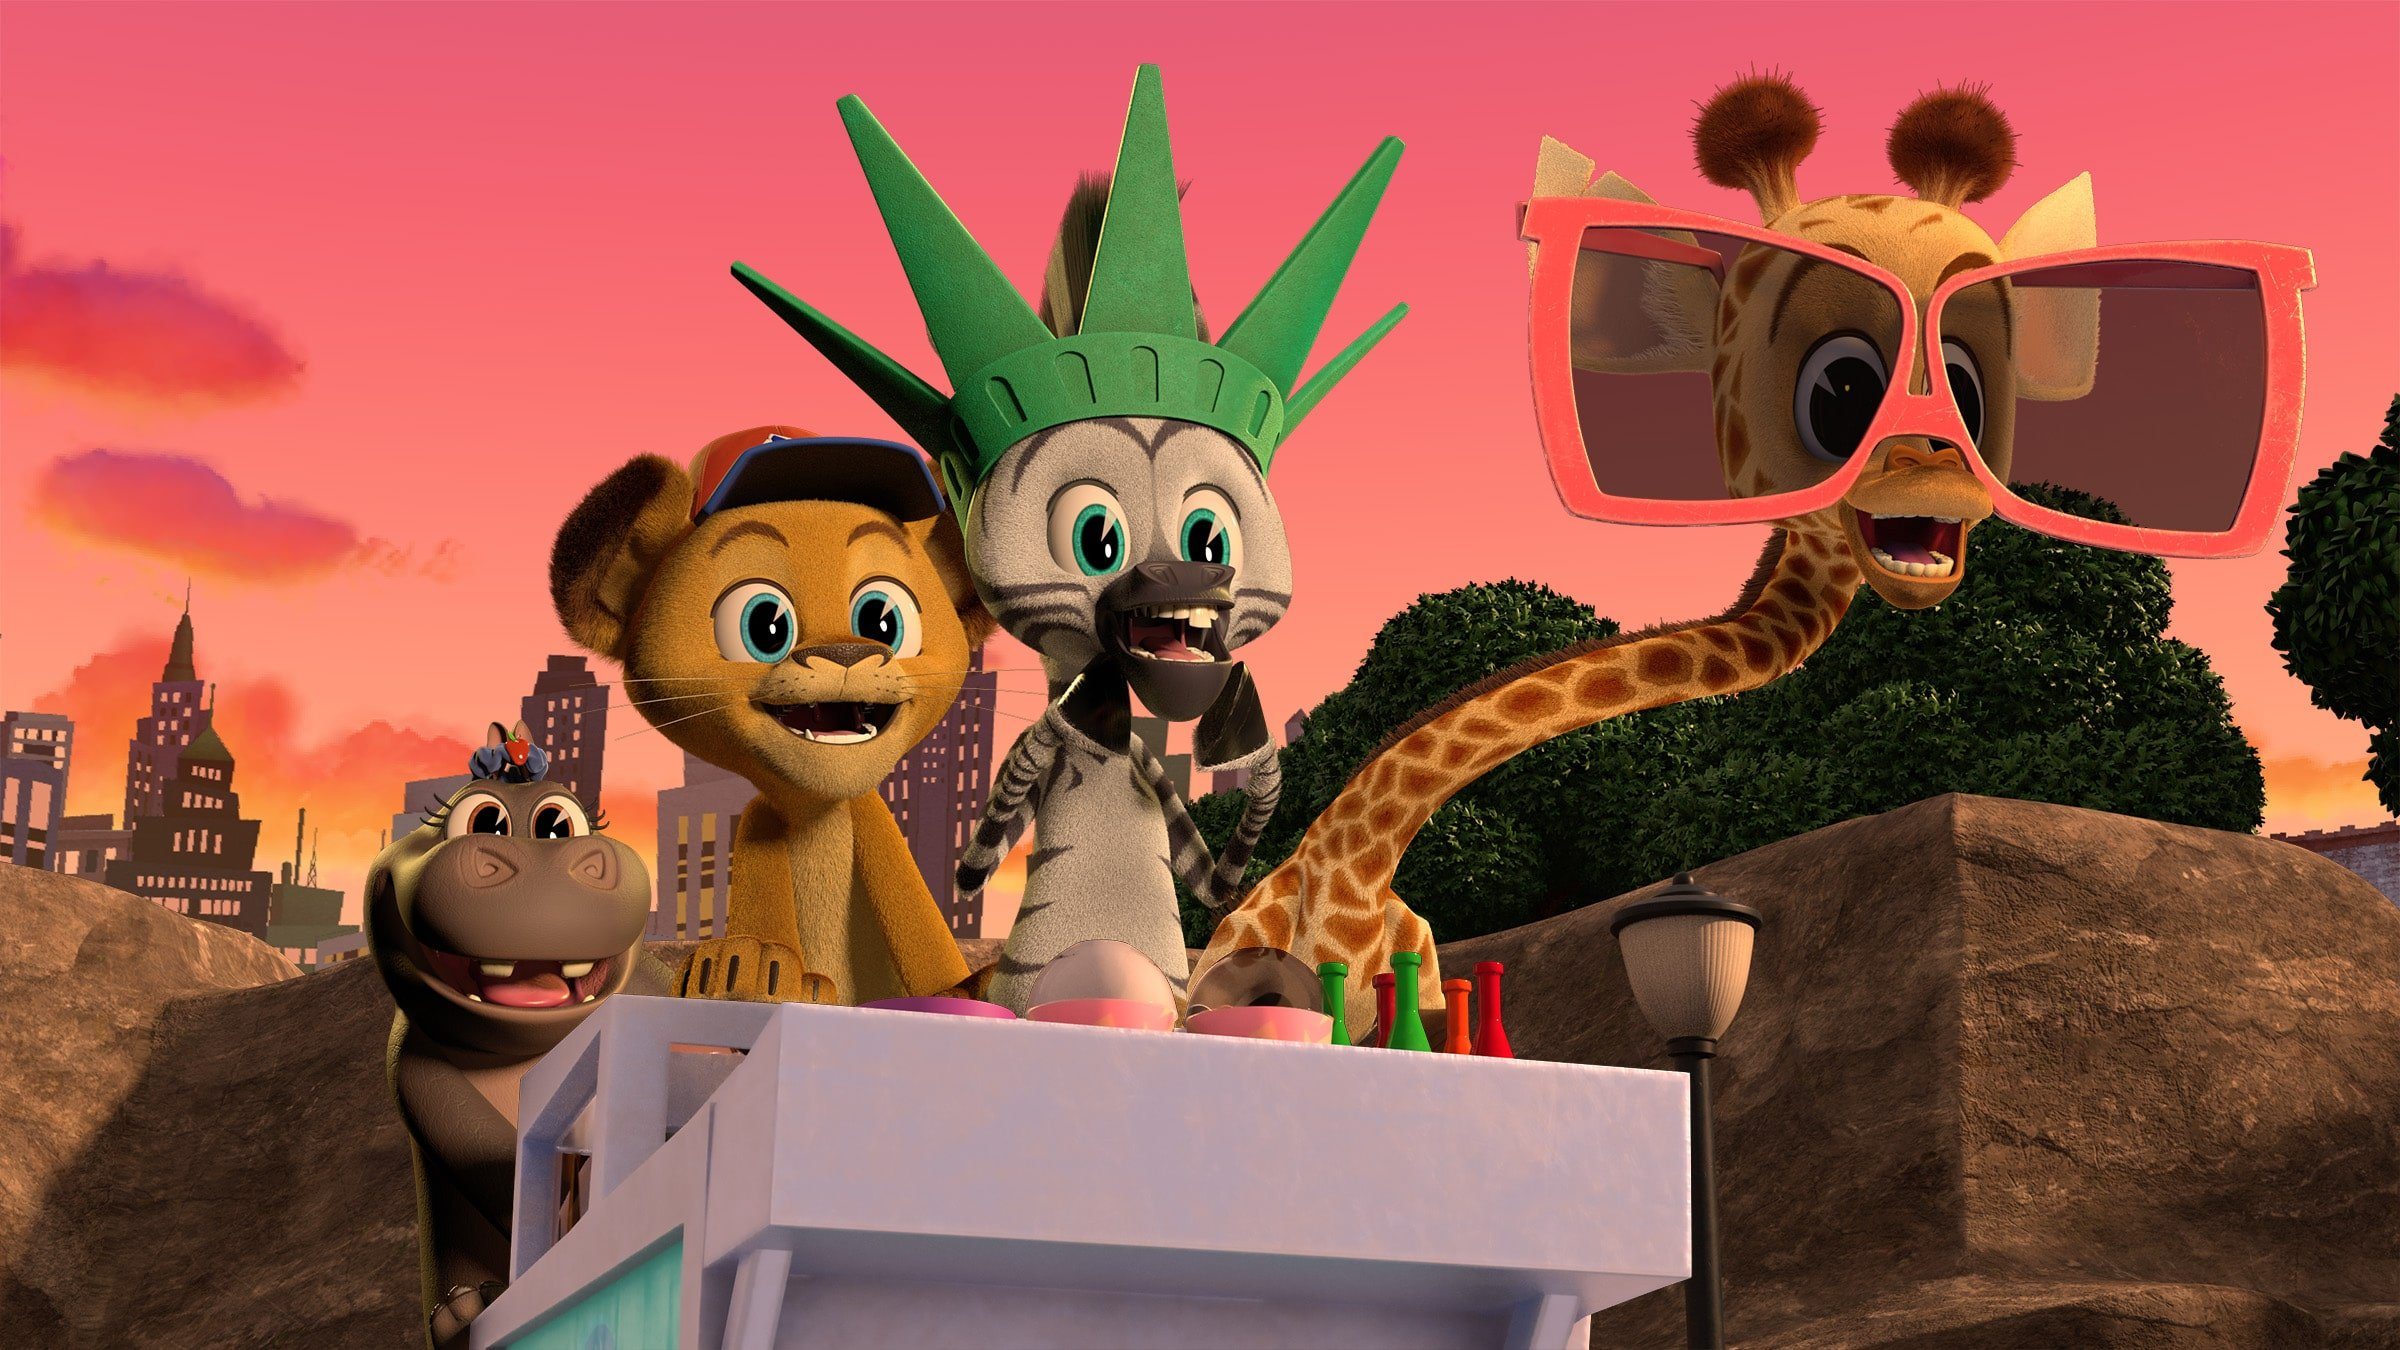 Madagascar A Little Wild Gloria, Alex, Marty, Melman. Filled with original music and dance-worthy songs, the lovable foursome Alex the Lion, Marty the Zebra, Melman the Giraffe, and Gloria the Hippo steal the show in Madagascar: A Little Wild. Capturing the iconic personalities of the four dynamos,Madagascar: A Little Wildshowcases the team as kids residing in their rescue habitat at the Central Park Zoo.